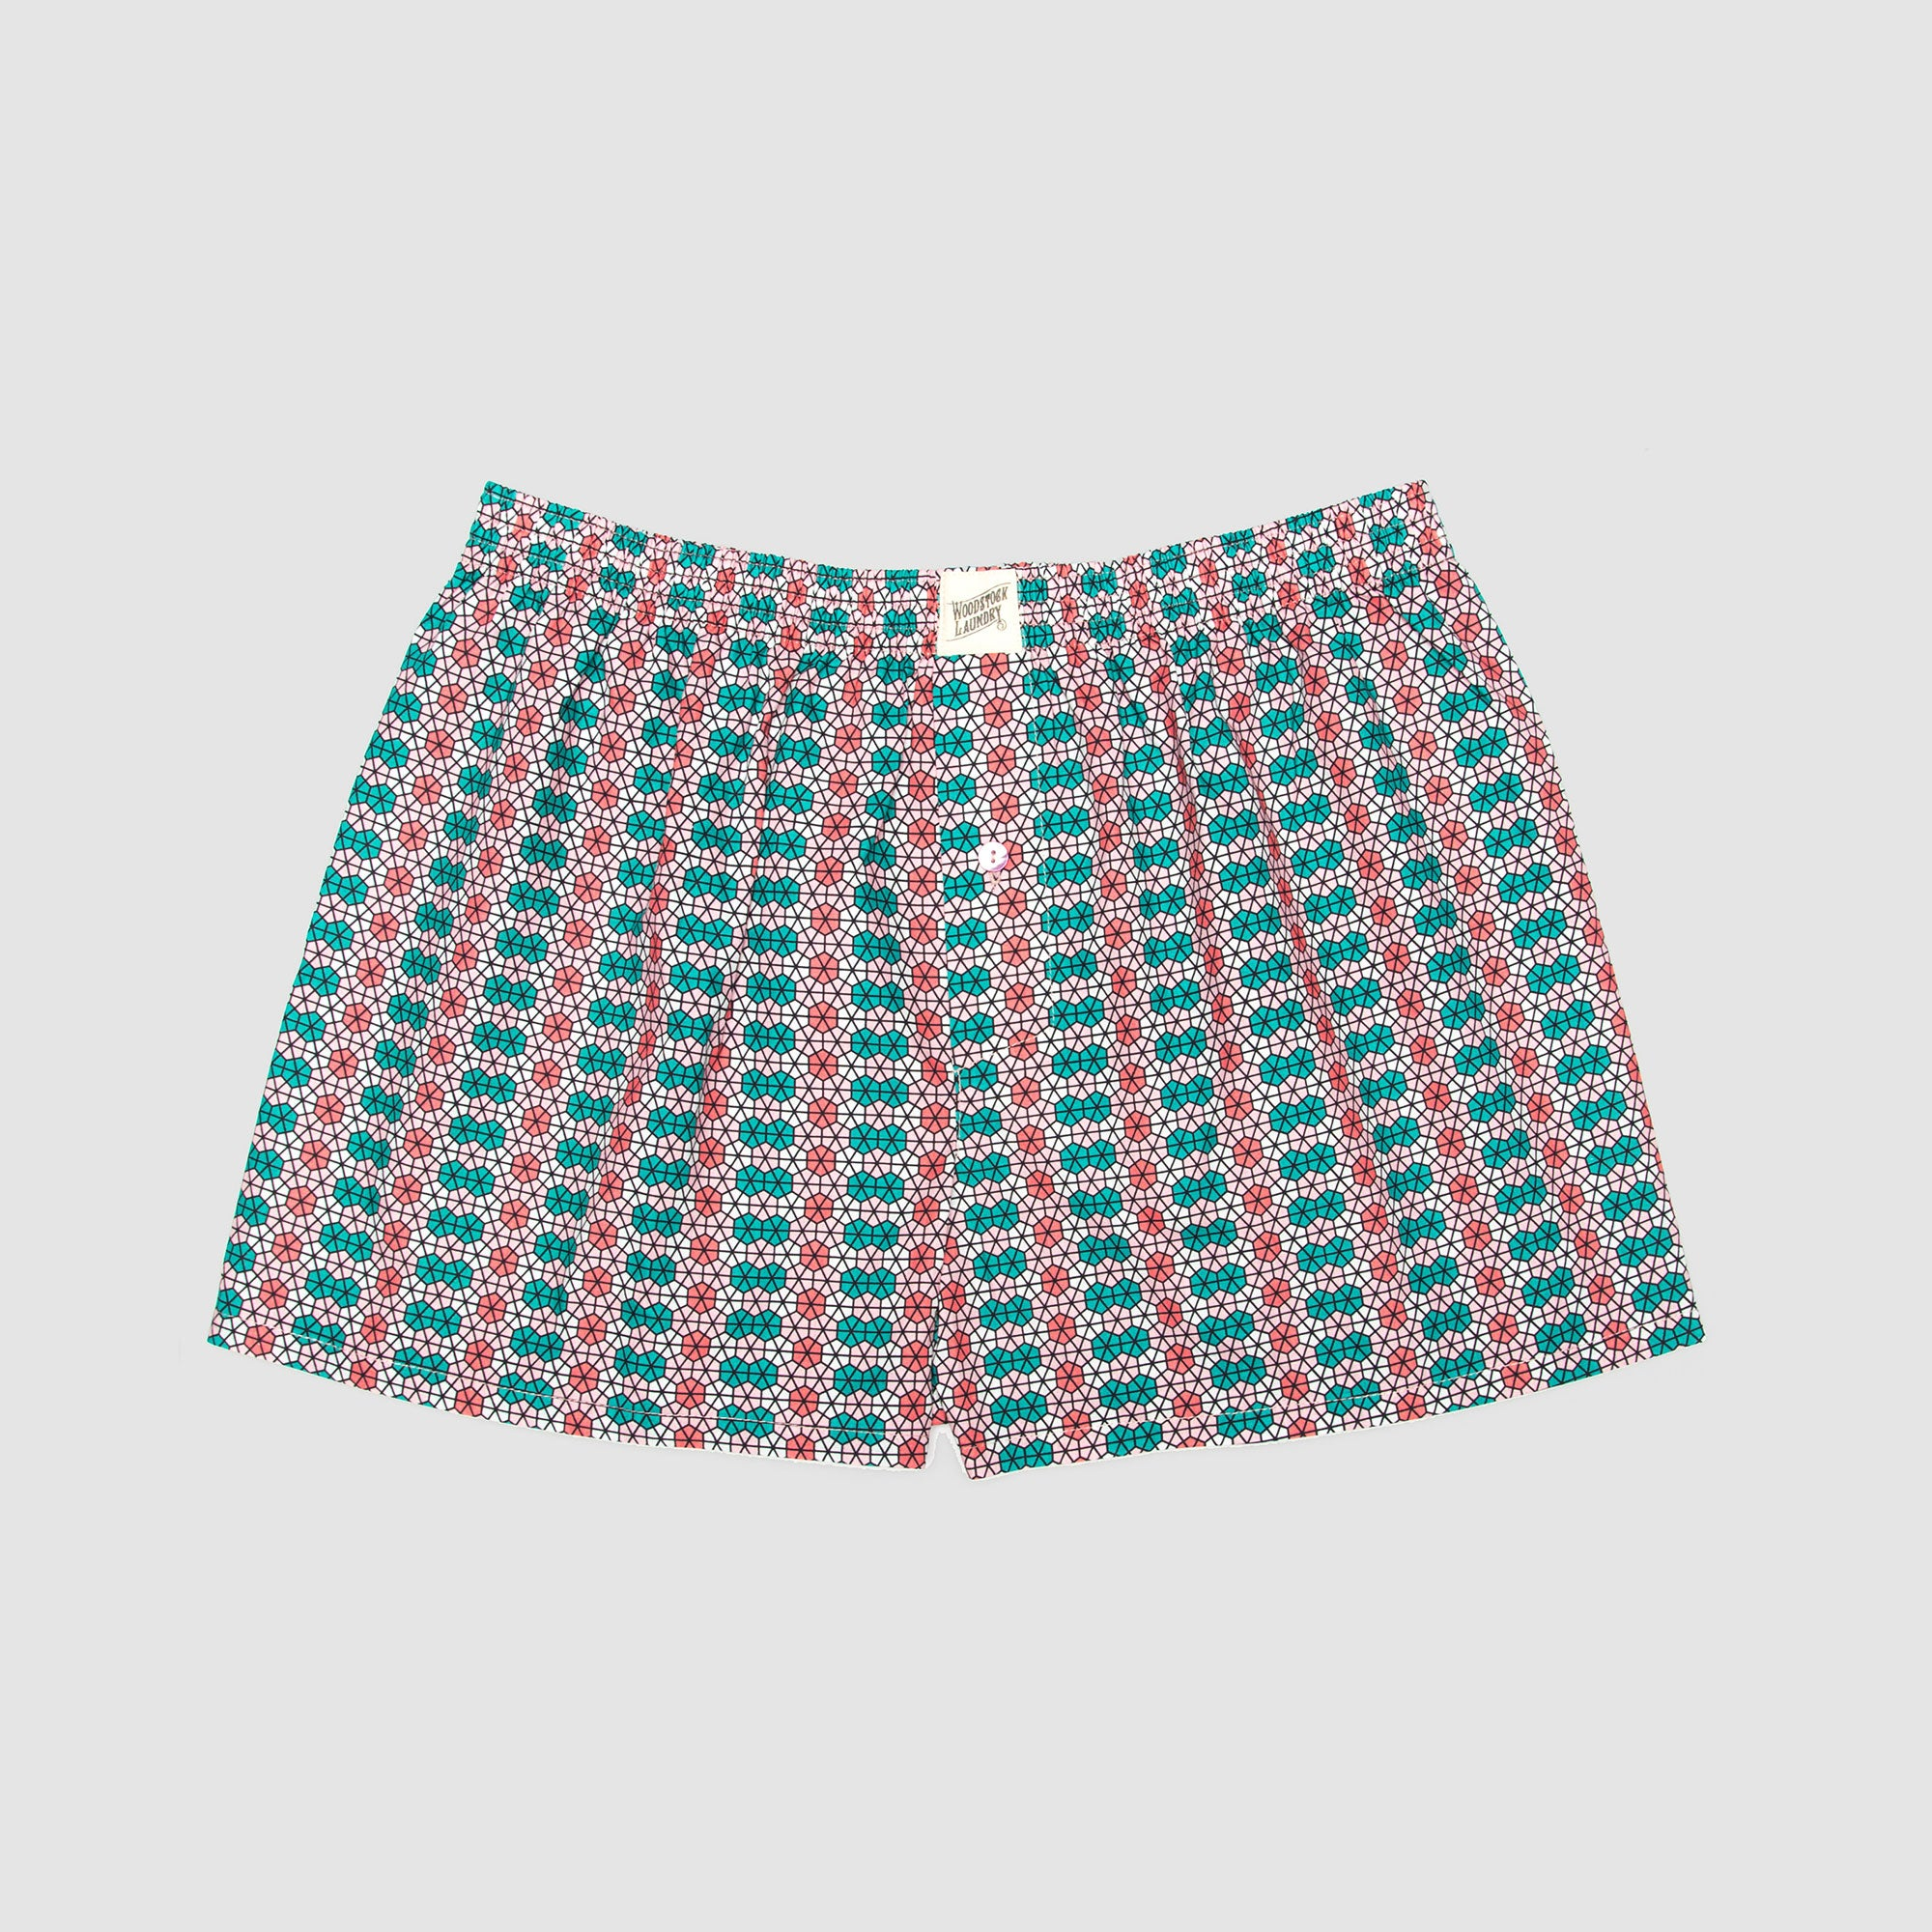 Boxer Shorts Hexagon Marrakesh - Woodstock Laundry